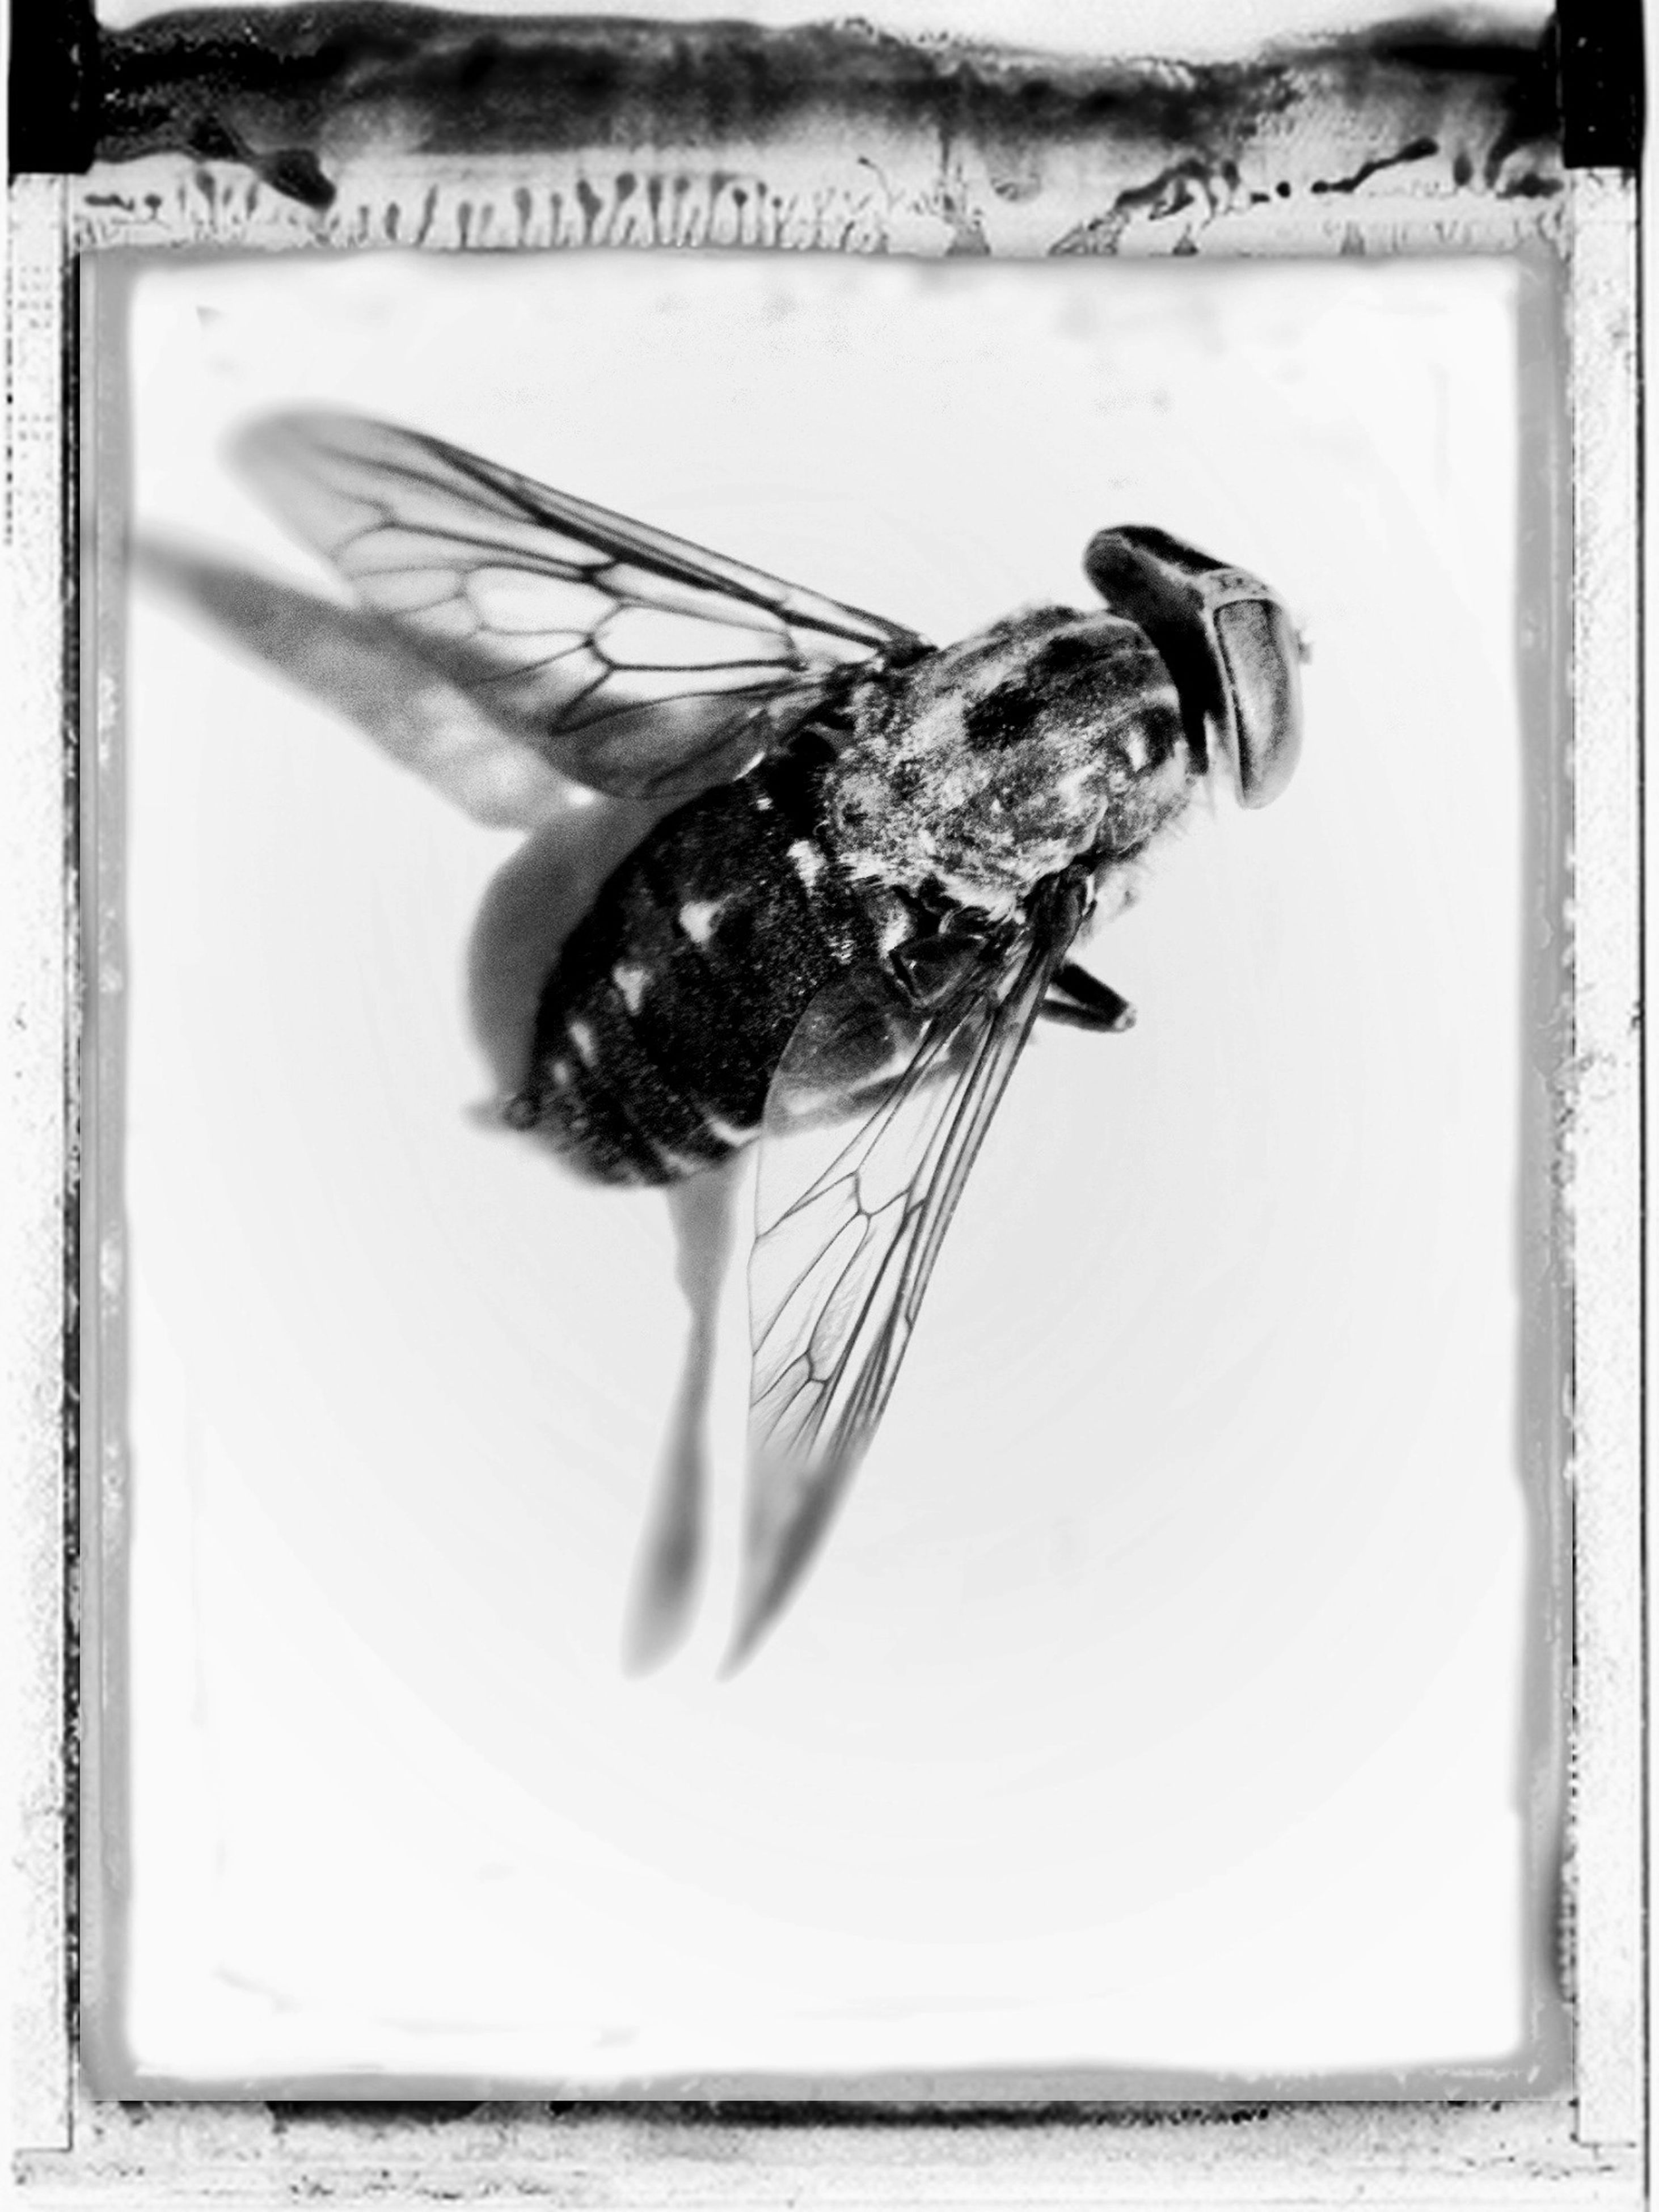 indoors, close-up, one animal, auto post production filter, transfer print, animal themes, day, water, reflection, part of, wood - material, front view, wildlife, dead animal, person, holding